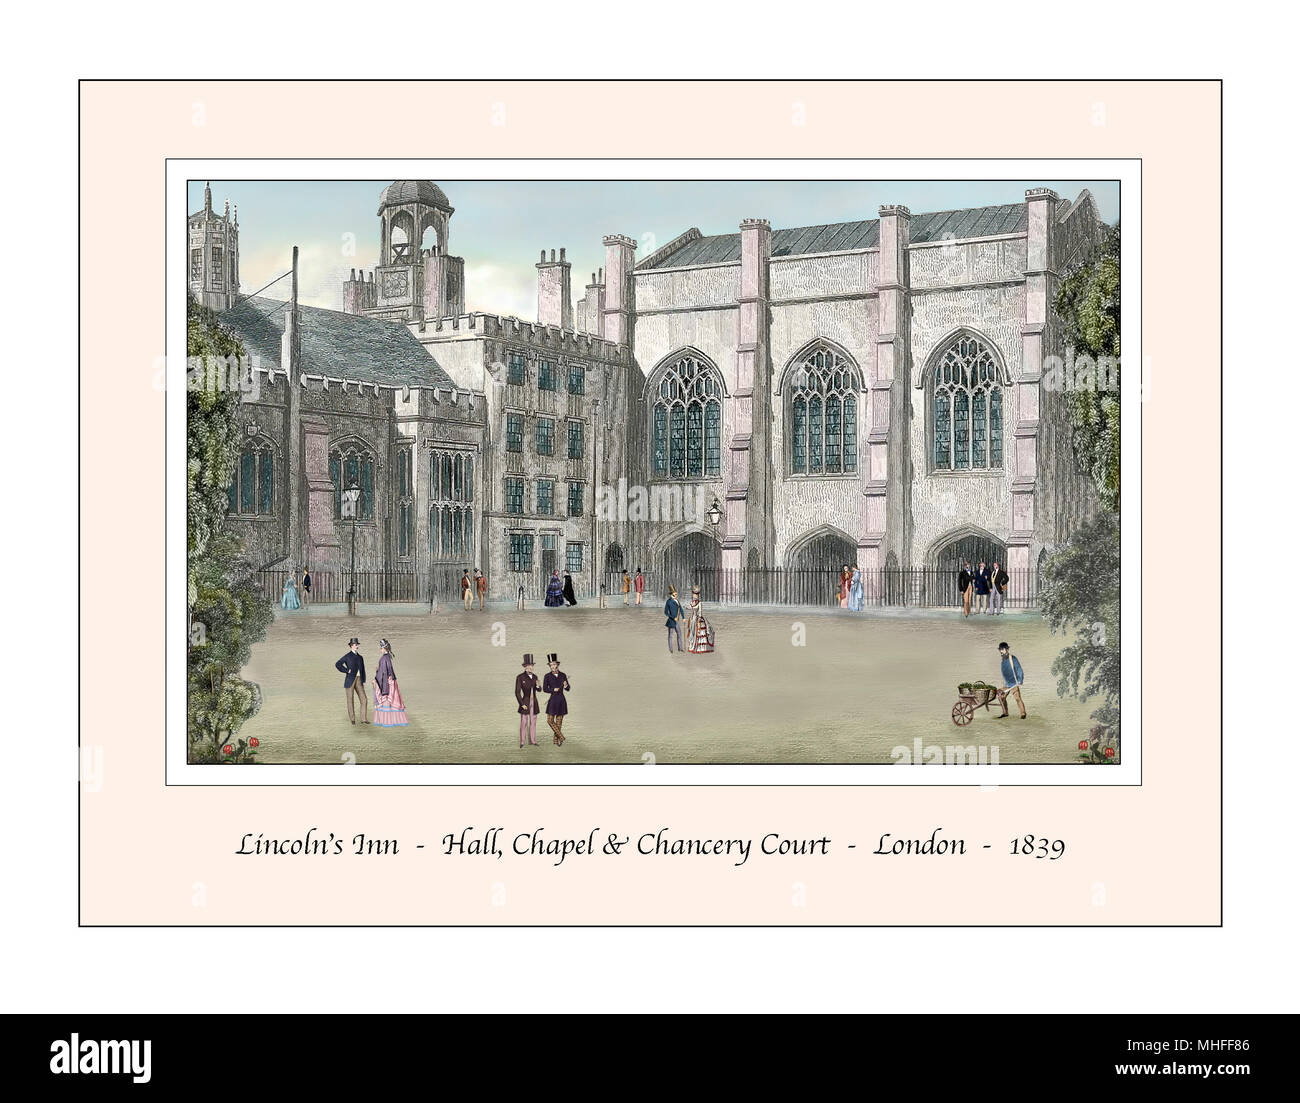 Lincoln's Inn London Original Design based on a 19th century Engraving - Stock Image